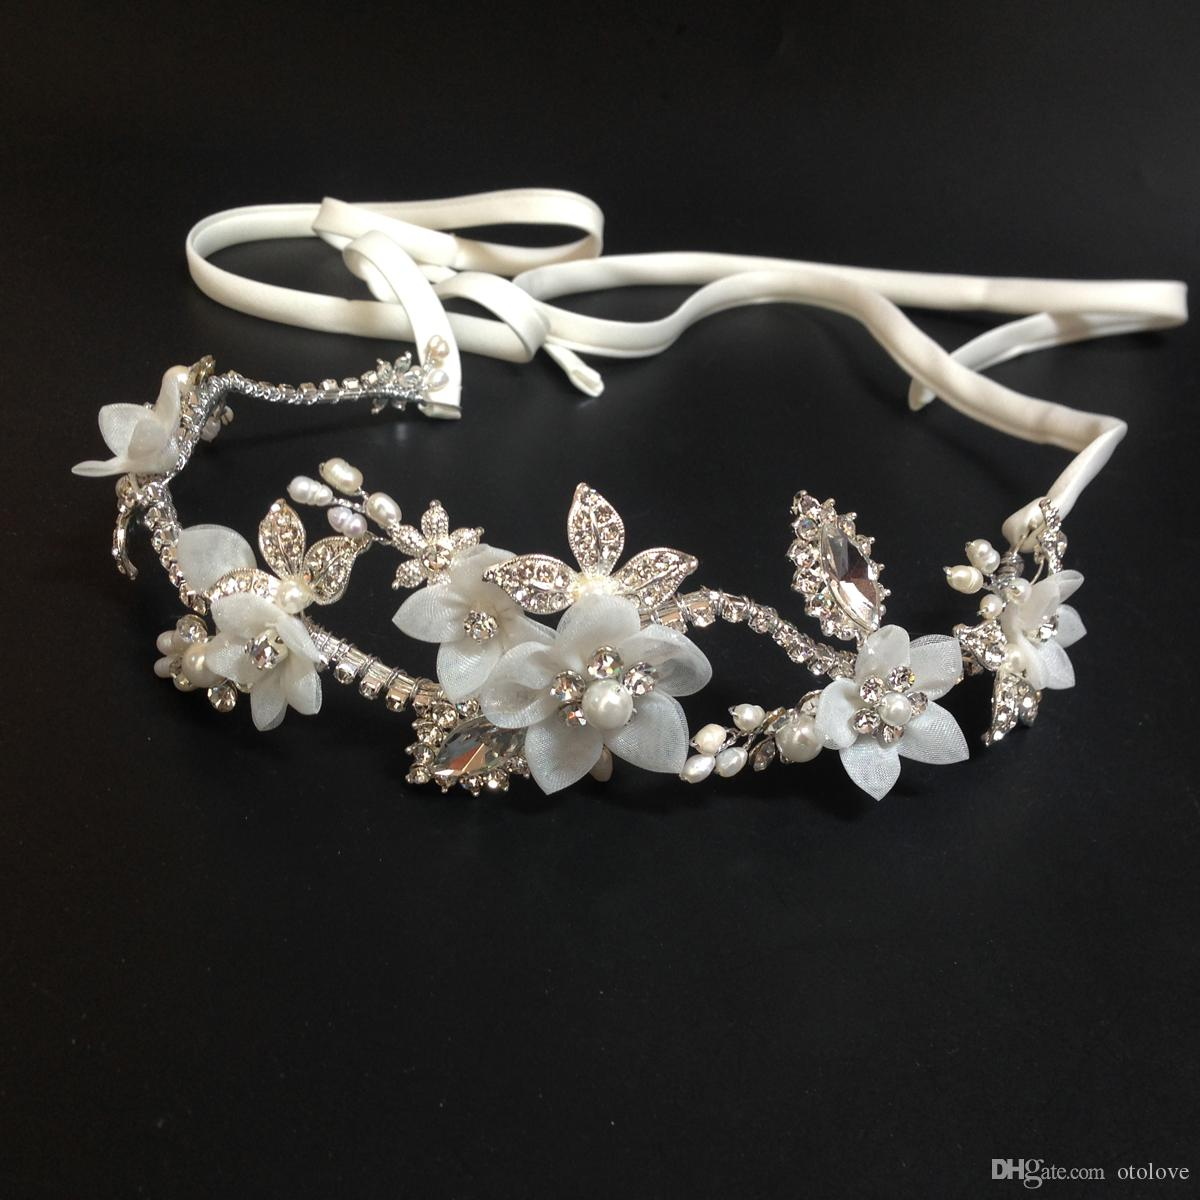 Rhinestone Beaded Wedding Fascinators Handmade White Flower Bridal  Headpiece Crystal Bridal Headband Floral Hair Crown Hair Accessories  Hairpins Kids Hair ... 36b501cfc70